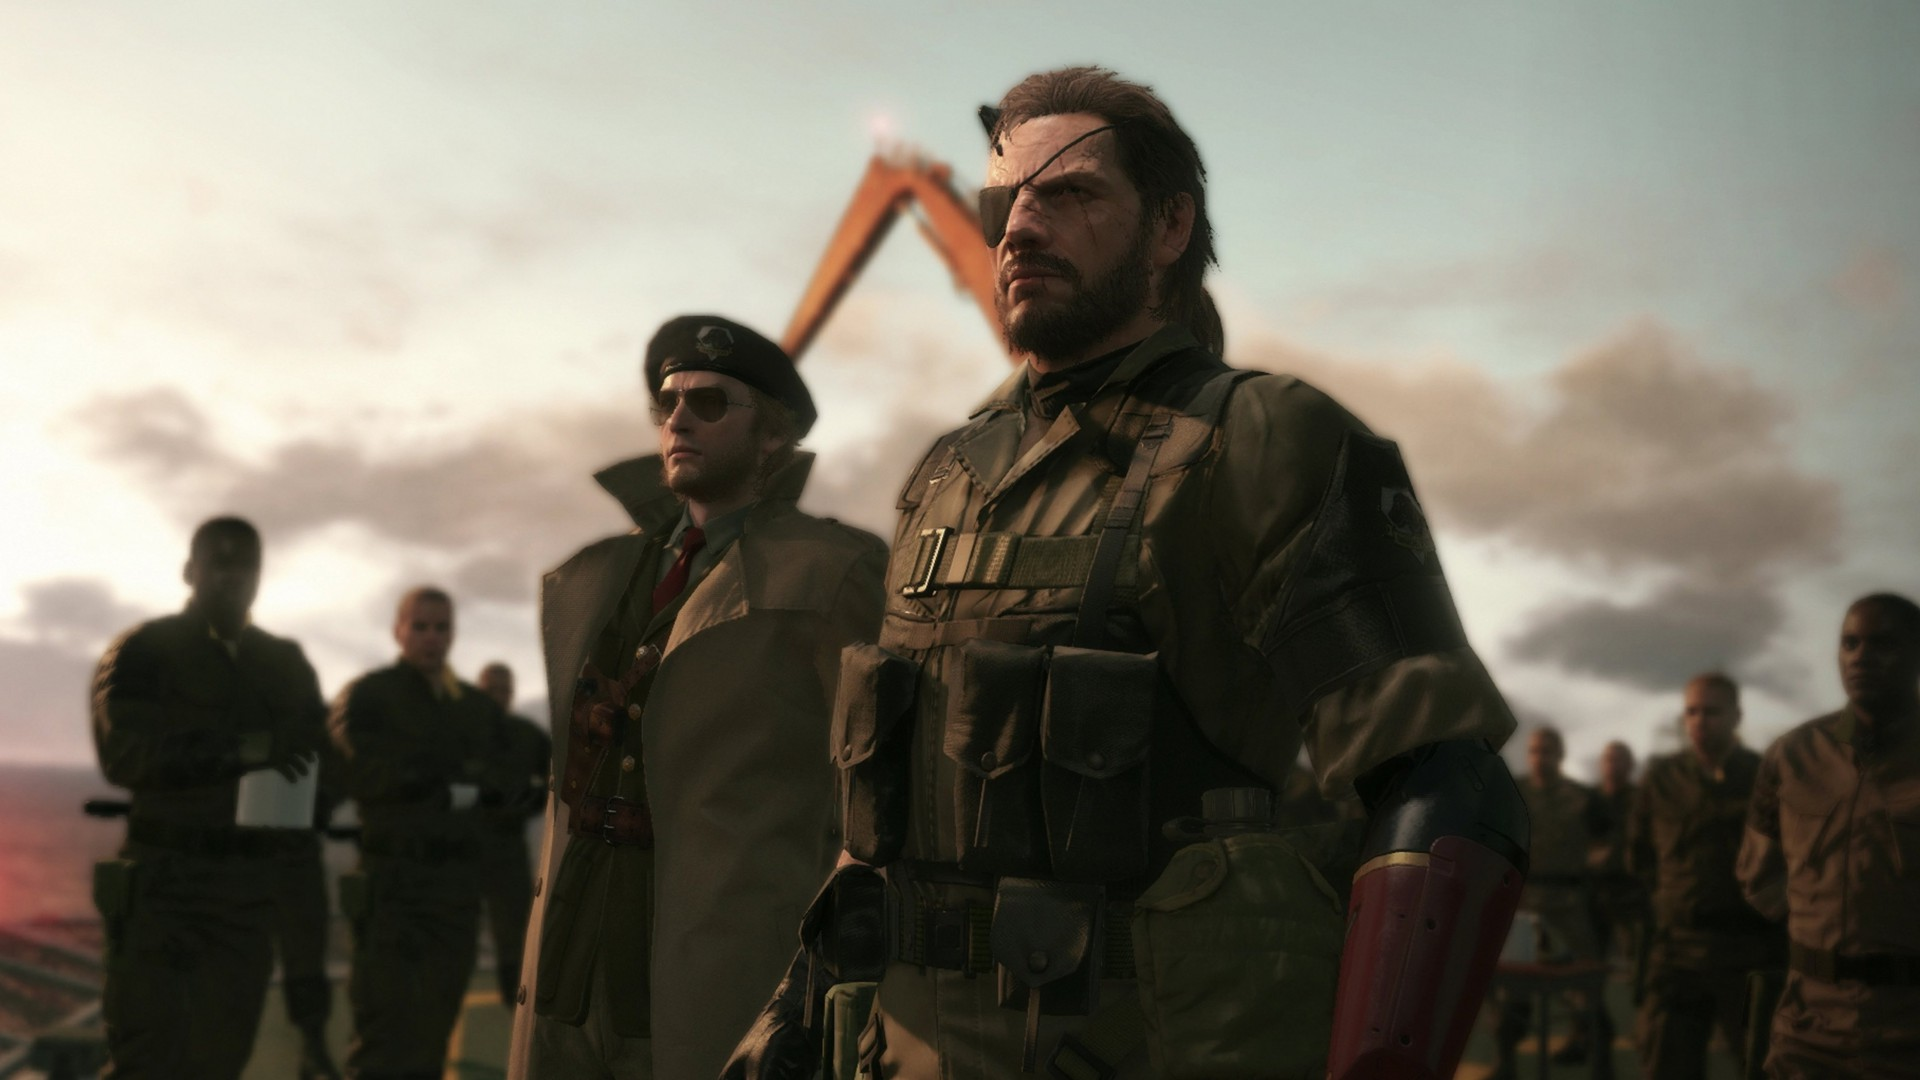 Metal Gear Solid V, The Phantom Pain, Best Game 2015, MGS, stealth, PS4, xBox one, PC, gameplay, review, screenshot (horizontal)